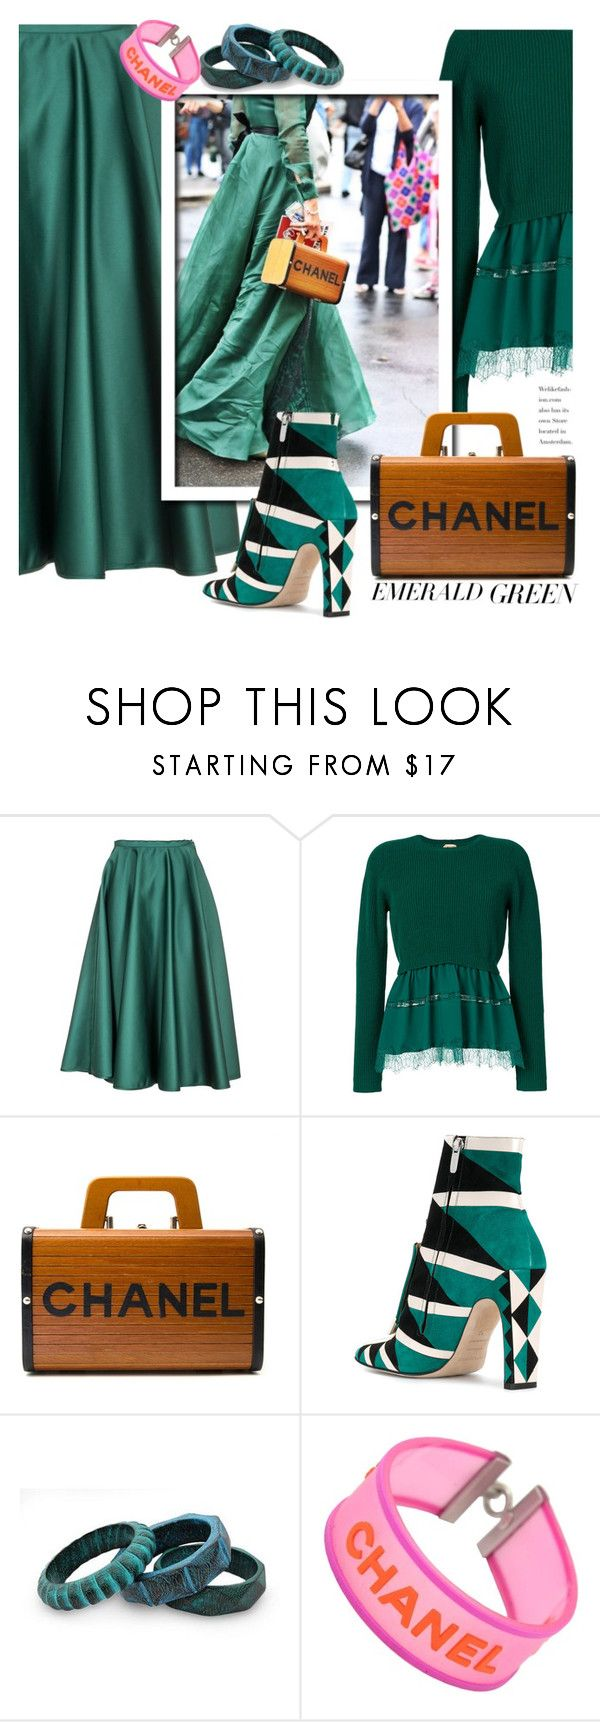 """""""Emerald City: Pops of Green"""" by ewa-naukowicz-wojcik ❤ liked on Polyvore featuring N°21, Chanel, Sergio Rossi, NOVICA and emeraldgreen"""